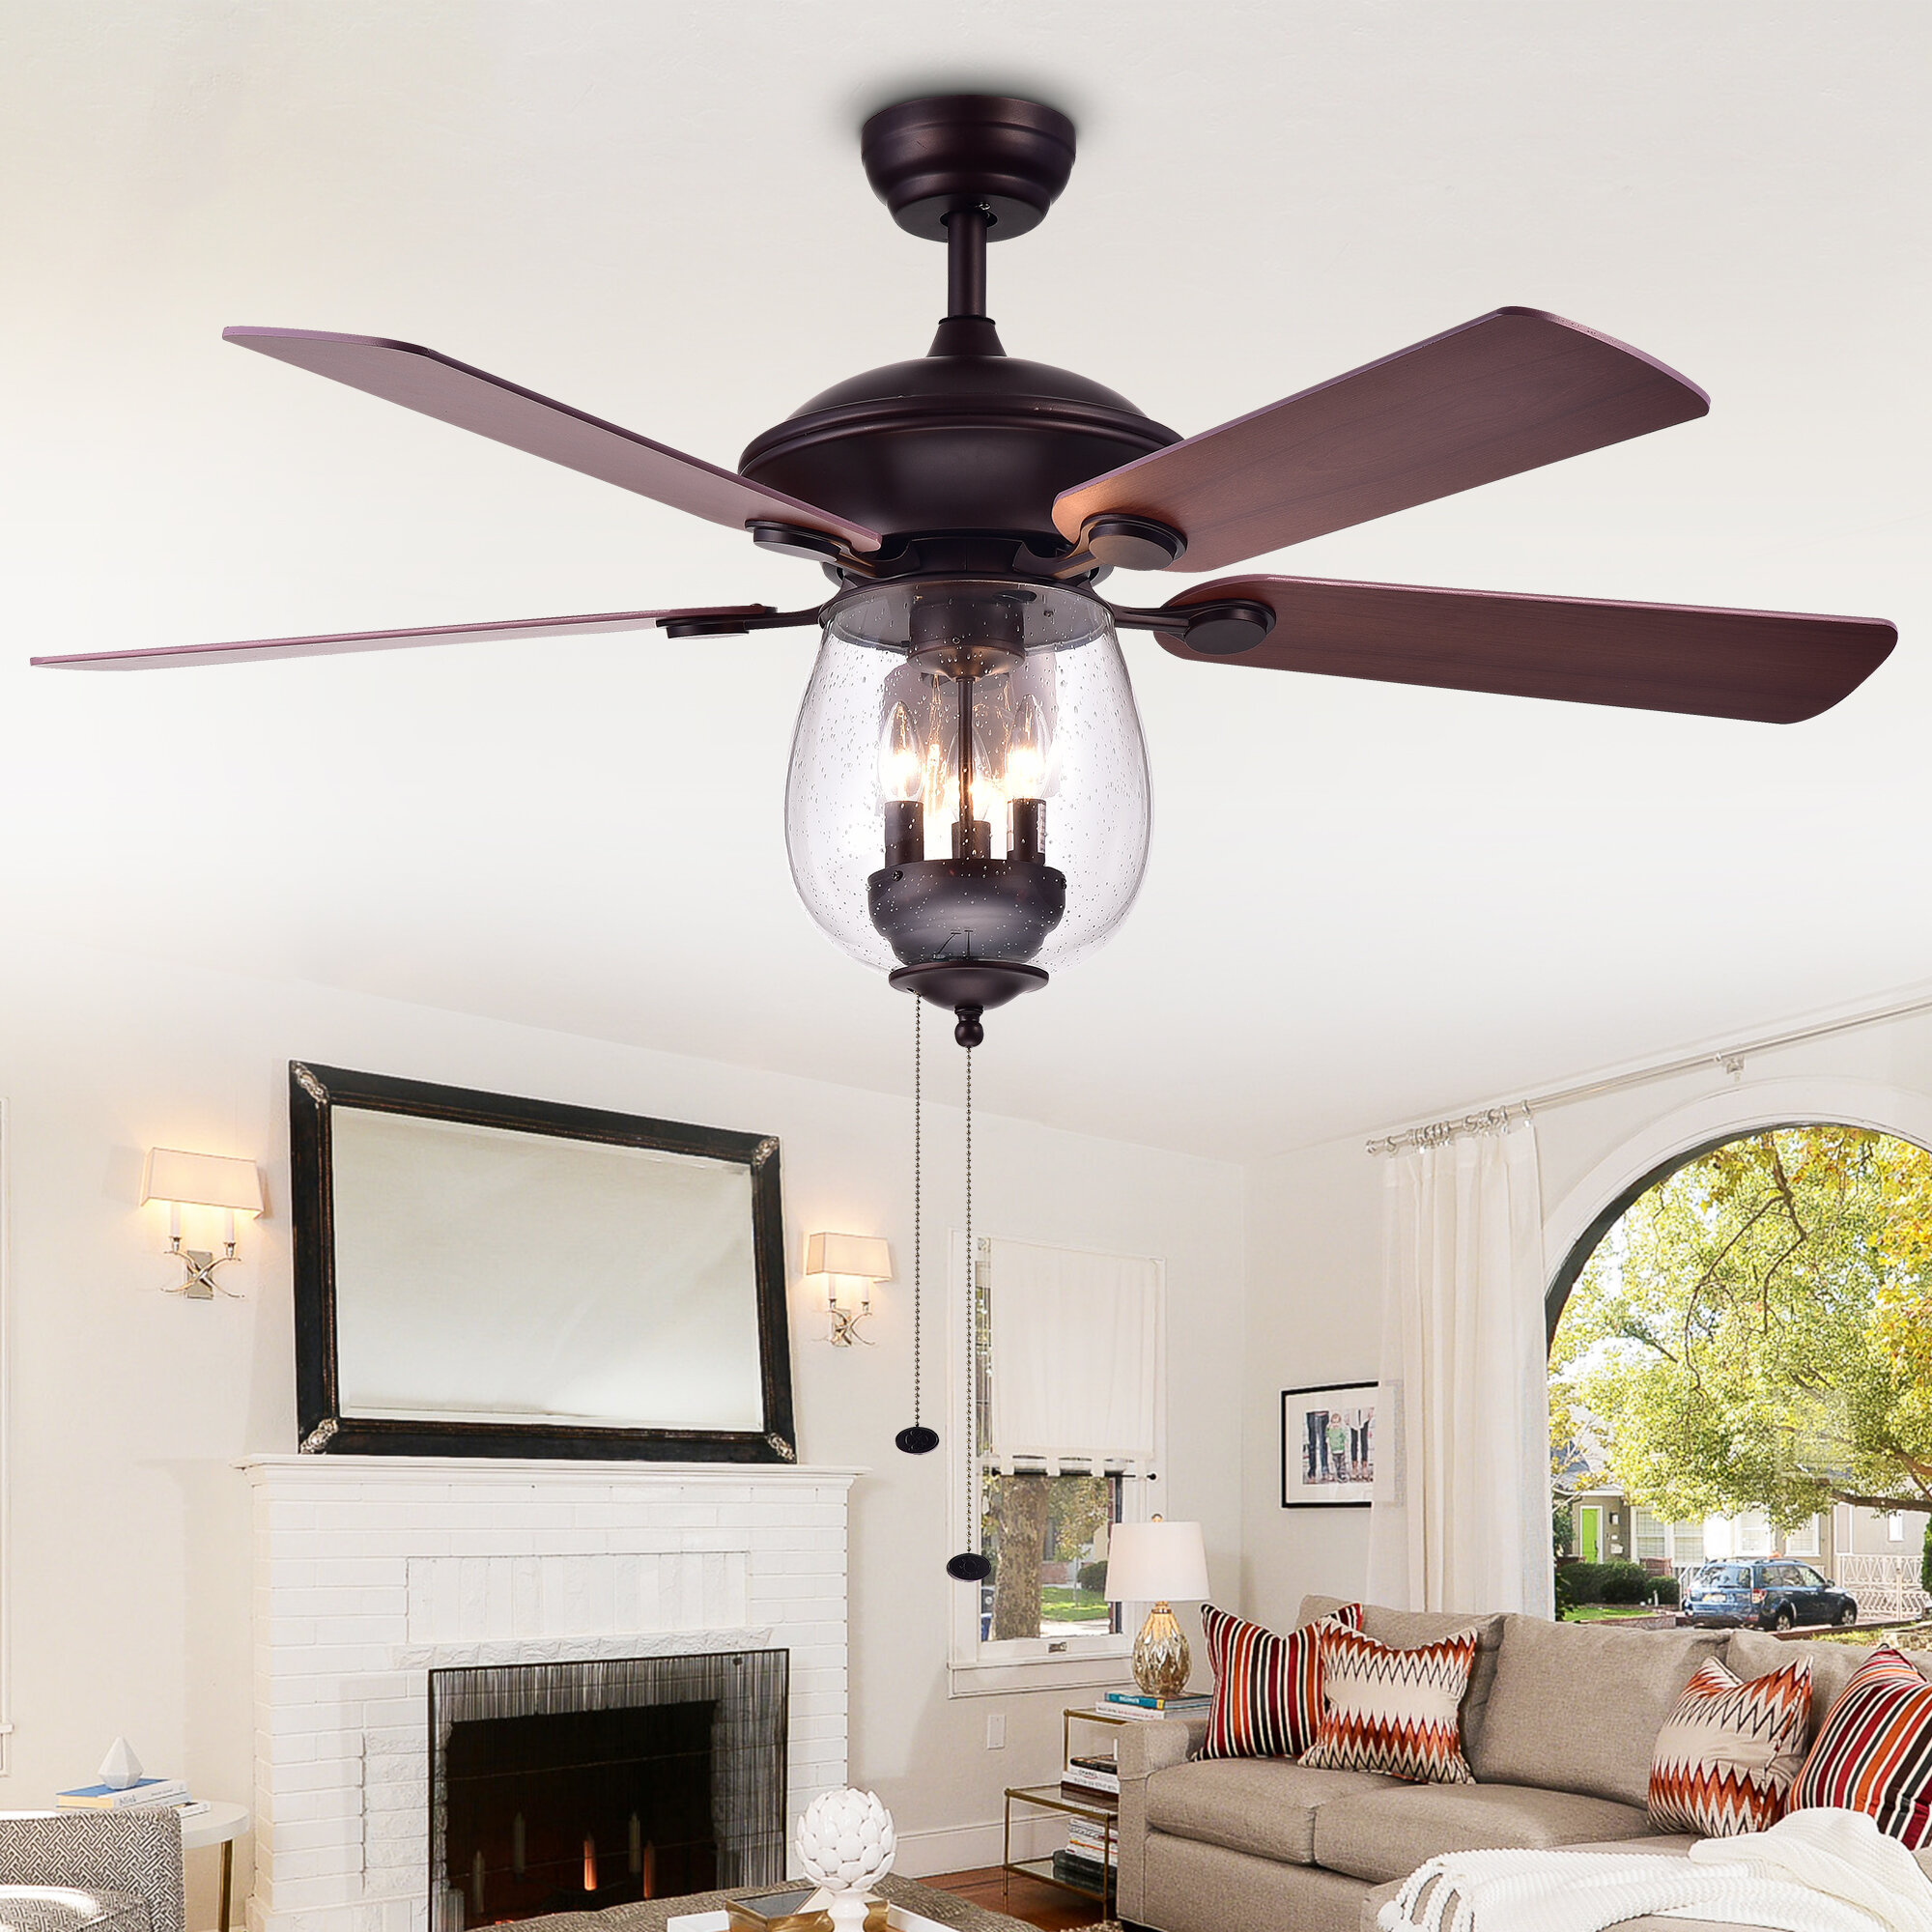 to ceiling date fans ceilings rare lighted style dlrn up design